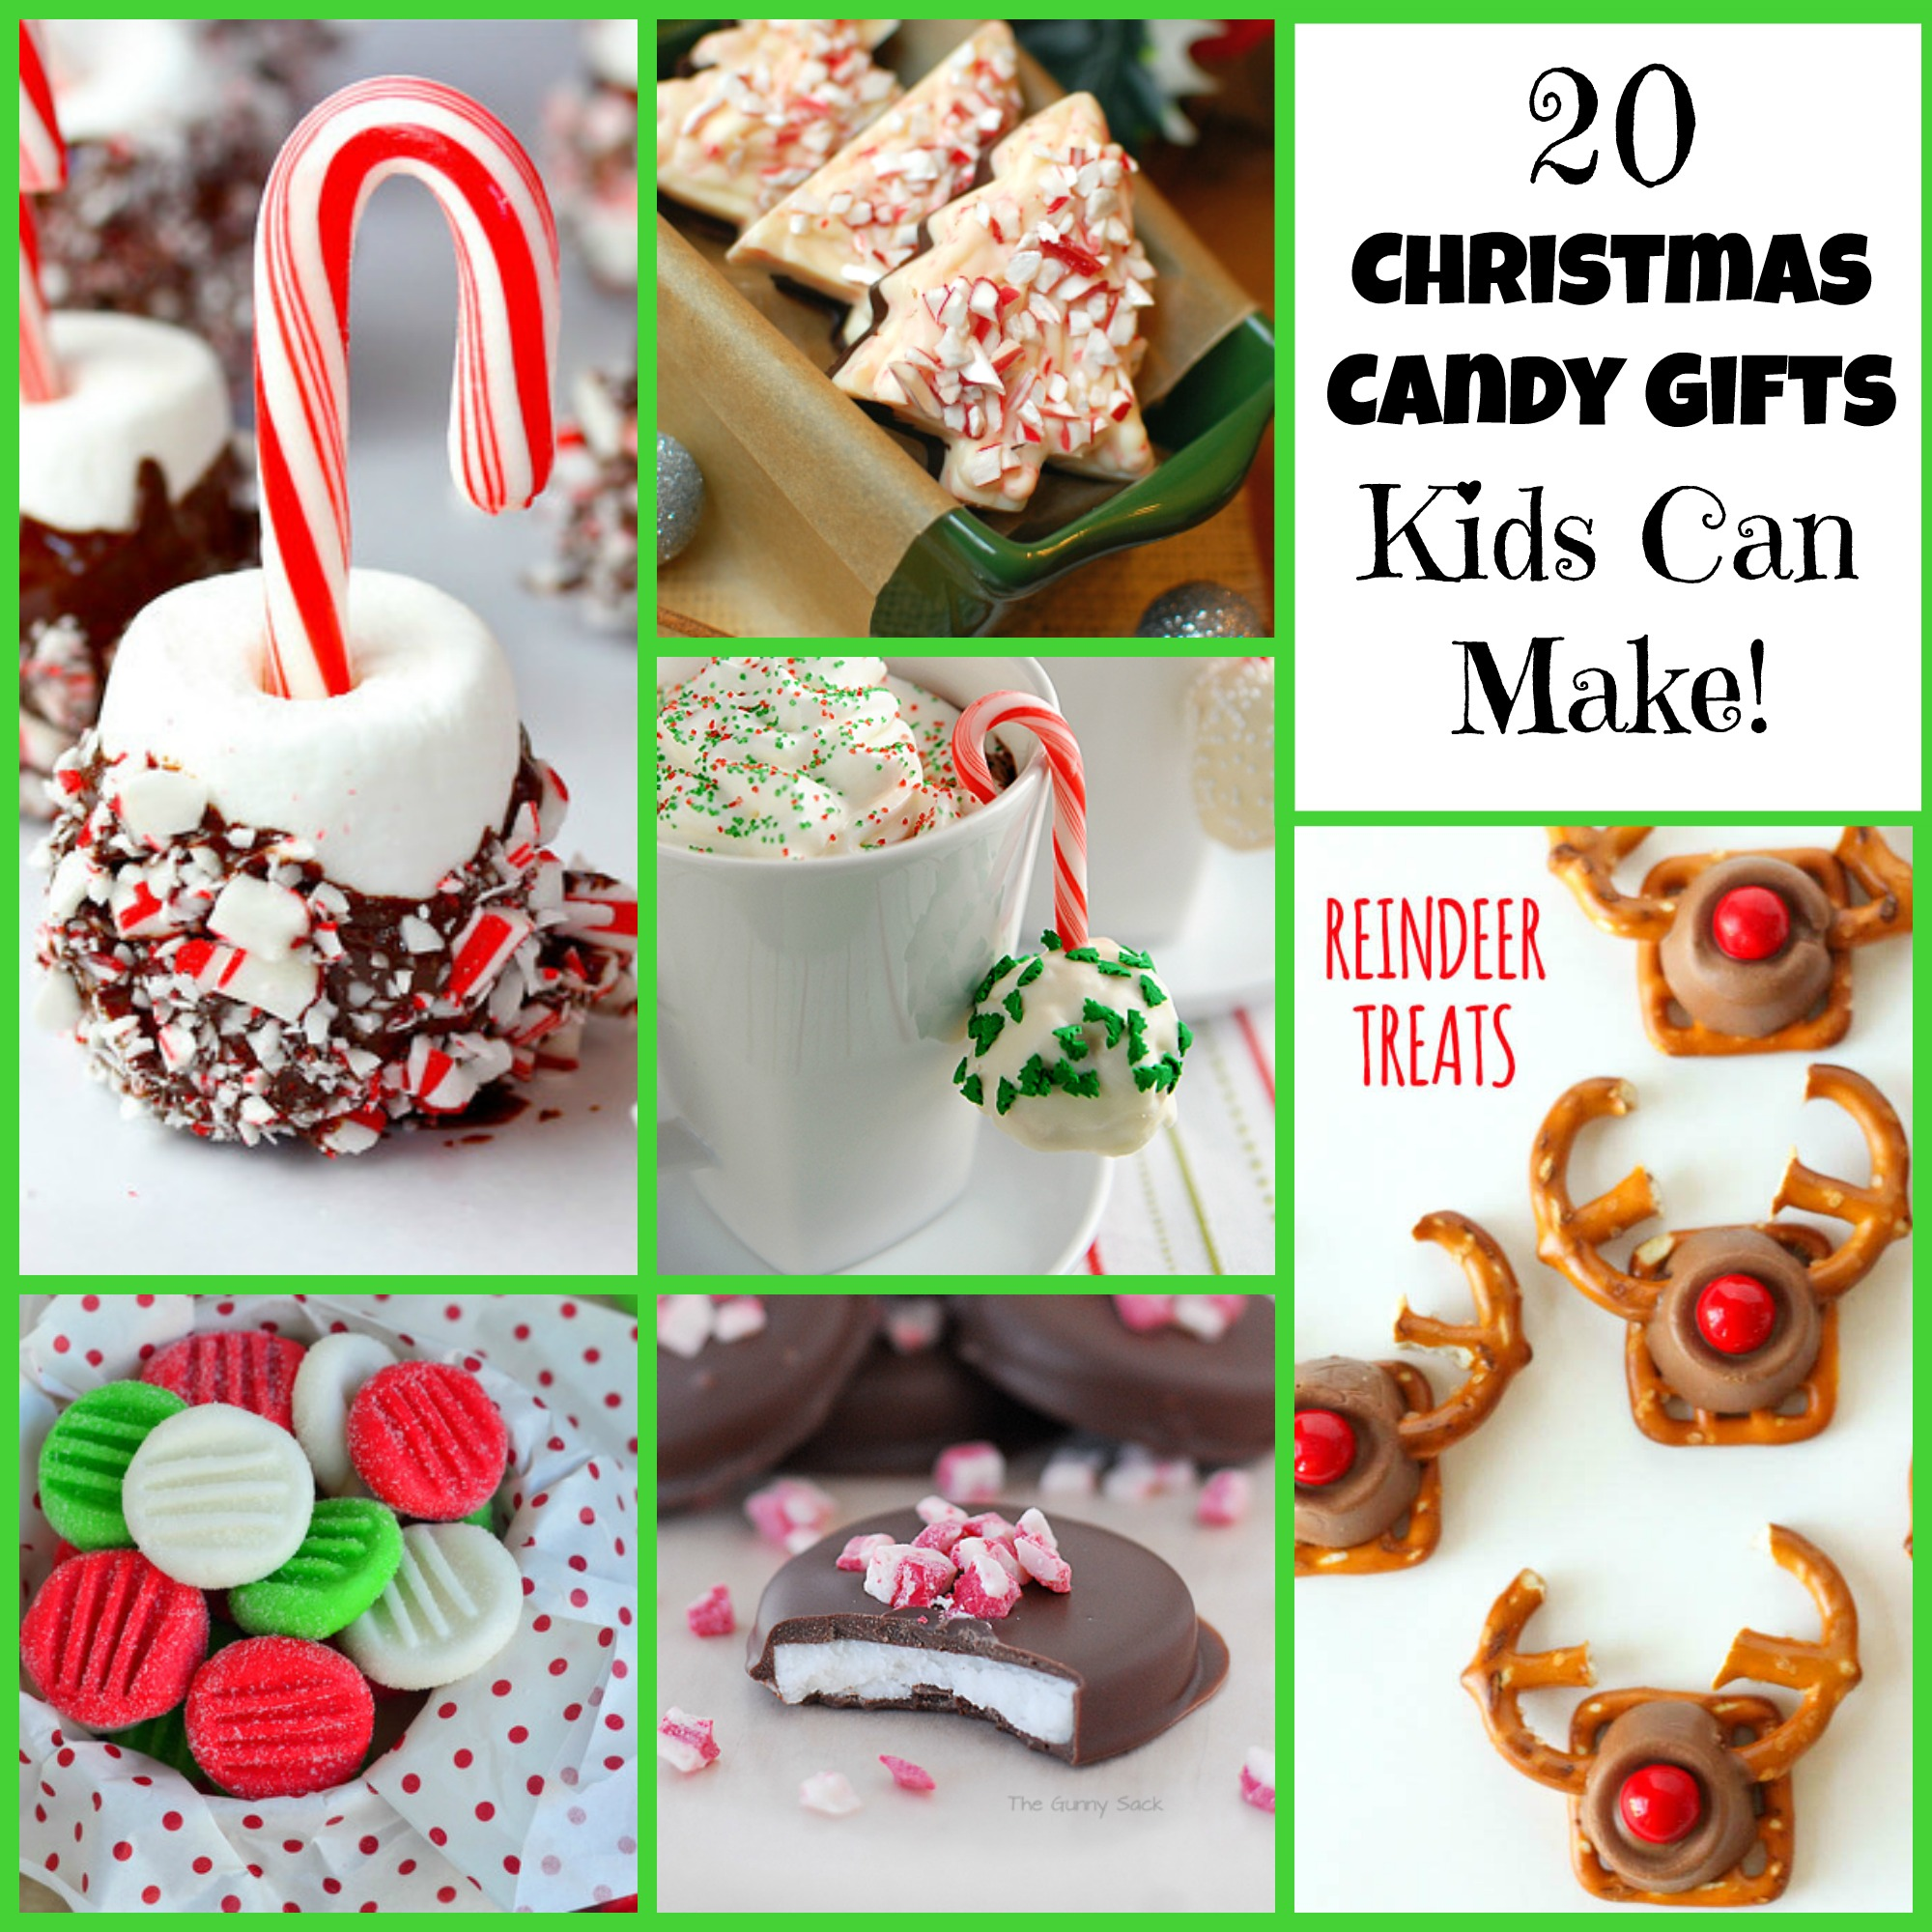 Christmas Candy Archives | Letters from Santa BlogLetters ...